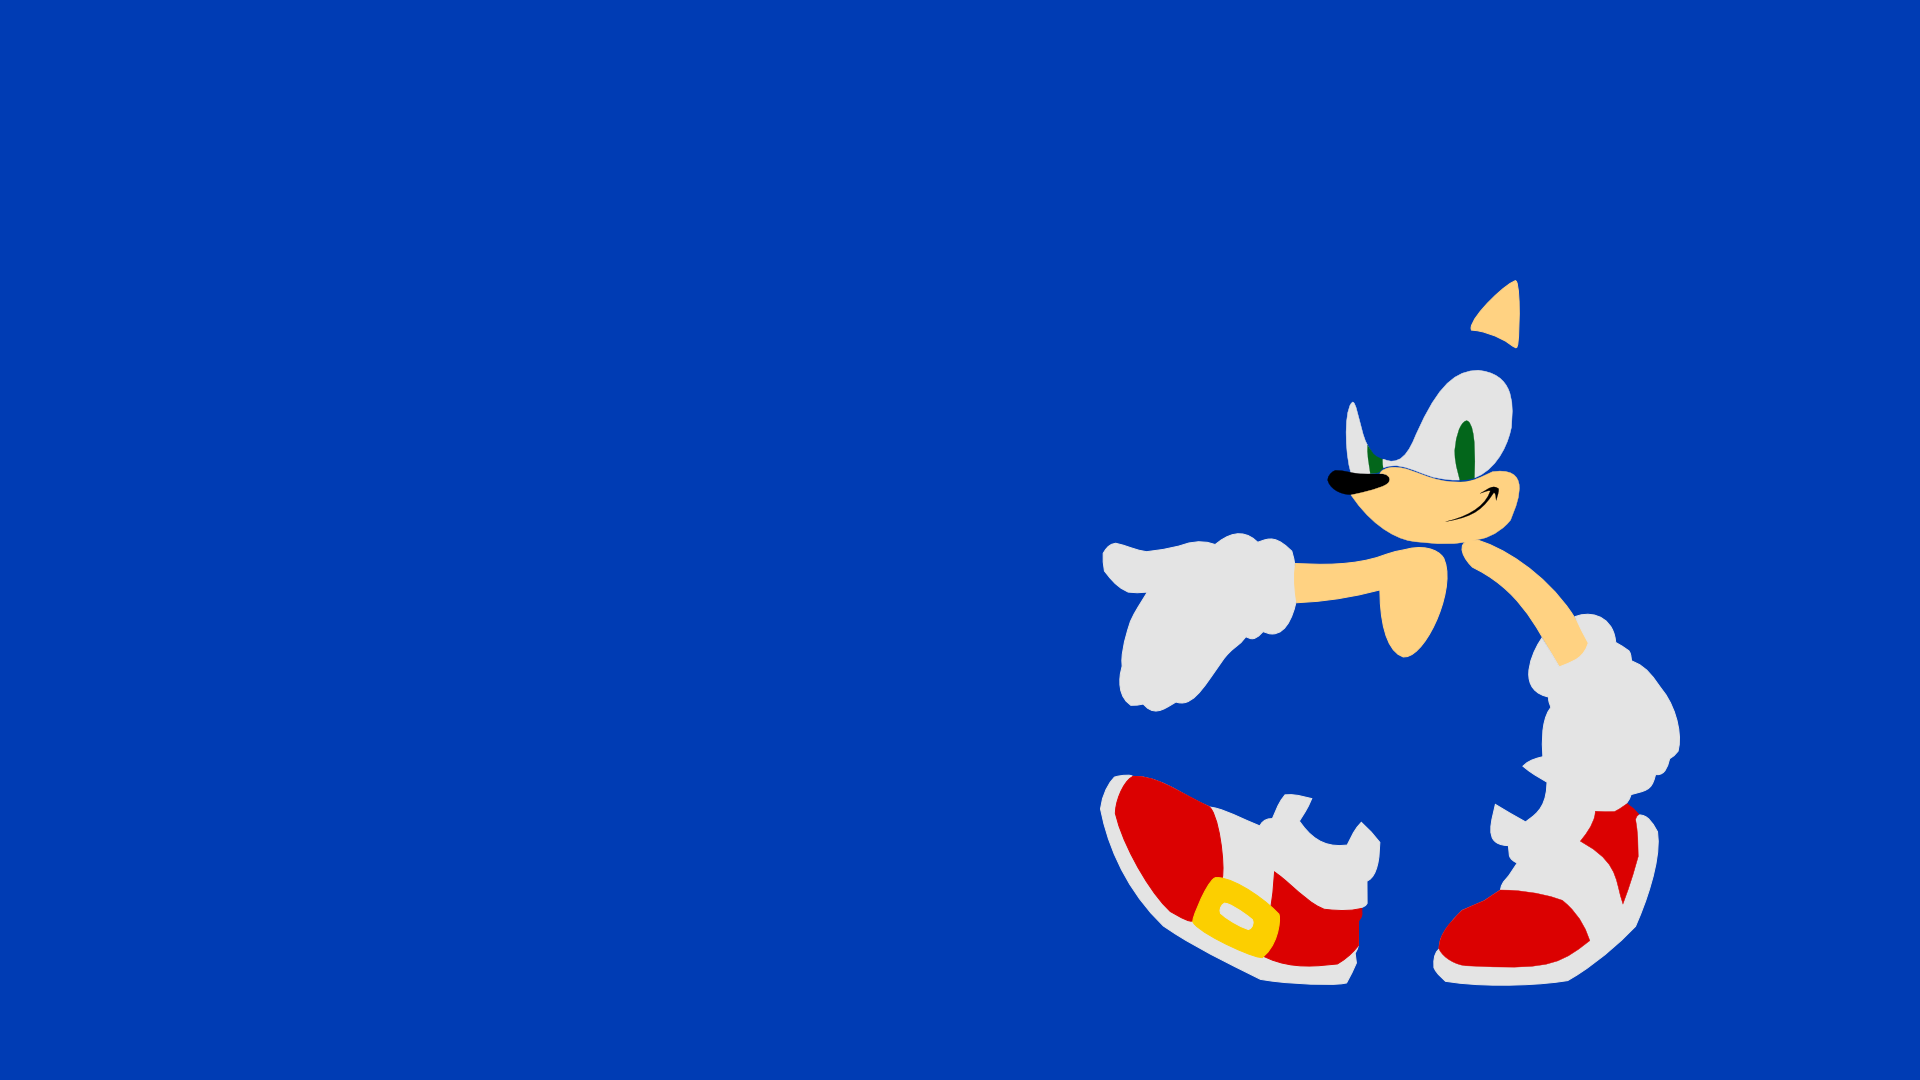 Sonic The Hedgehog Background - WallpaperSafari